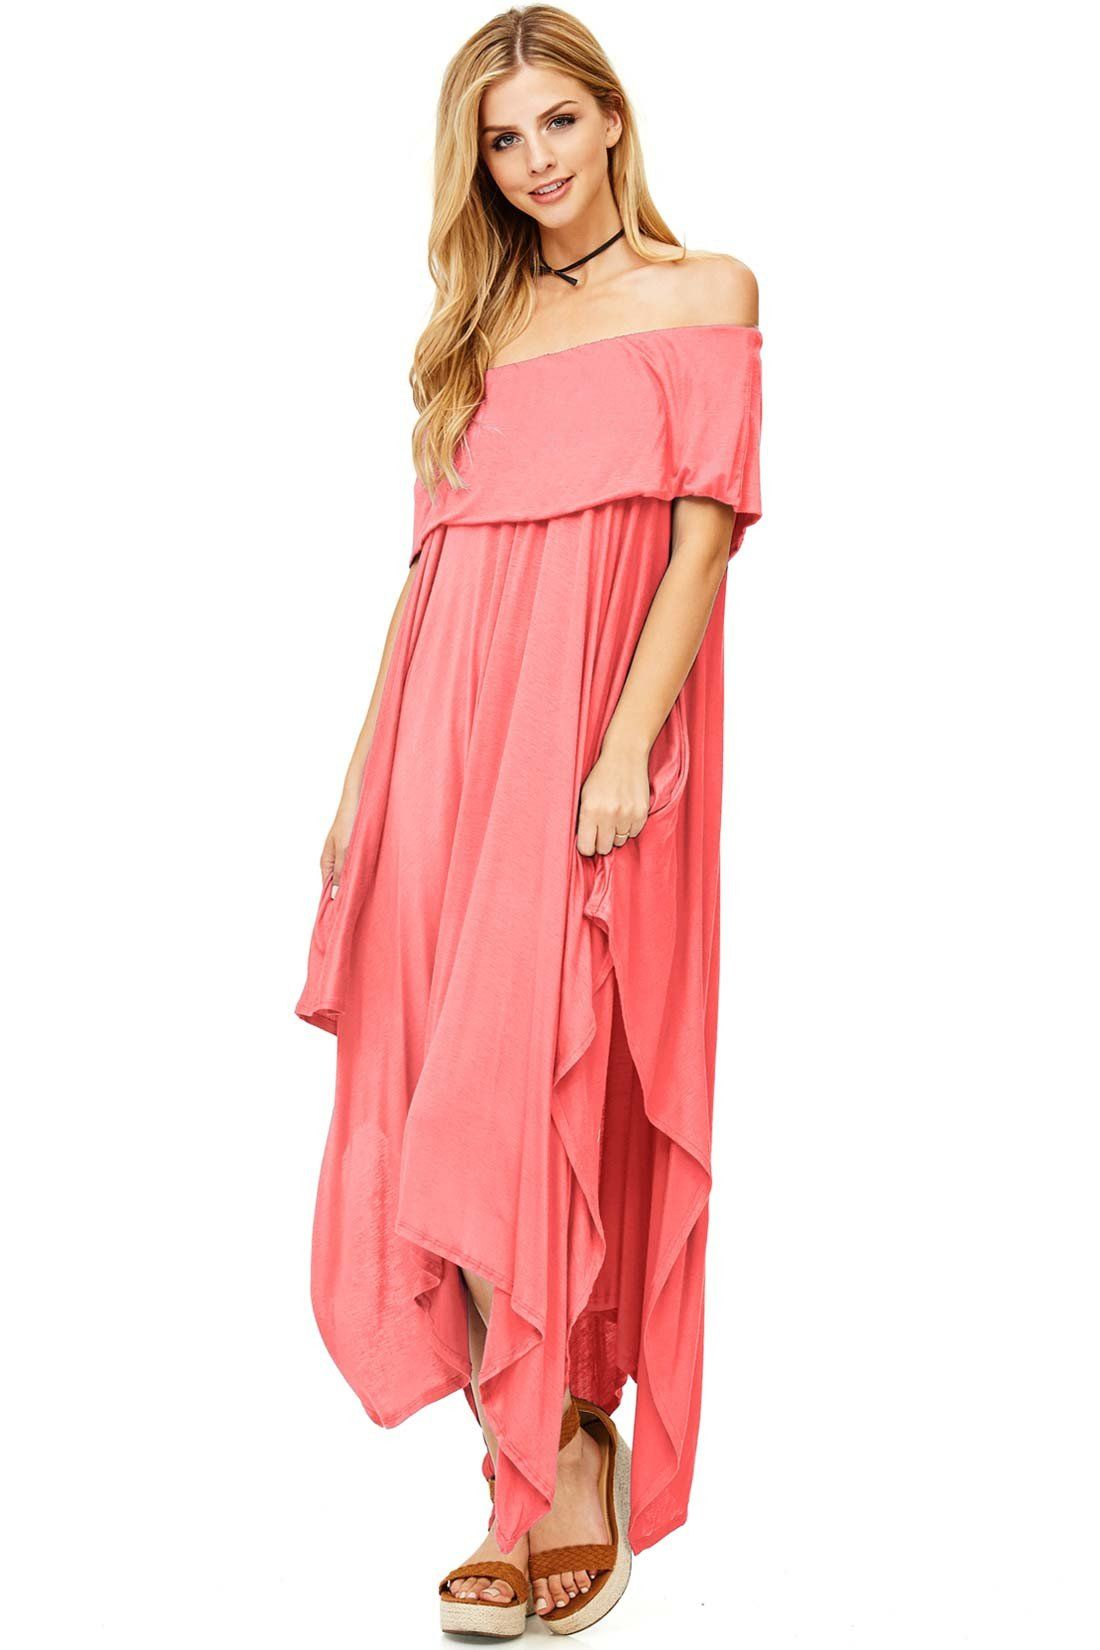 cda9640822b4 Unique dress with an off the shoulder double lined layer and an extreme  asymmetrical hem. Soft light fabric is comfortable and perfect for summer  days.